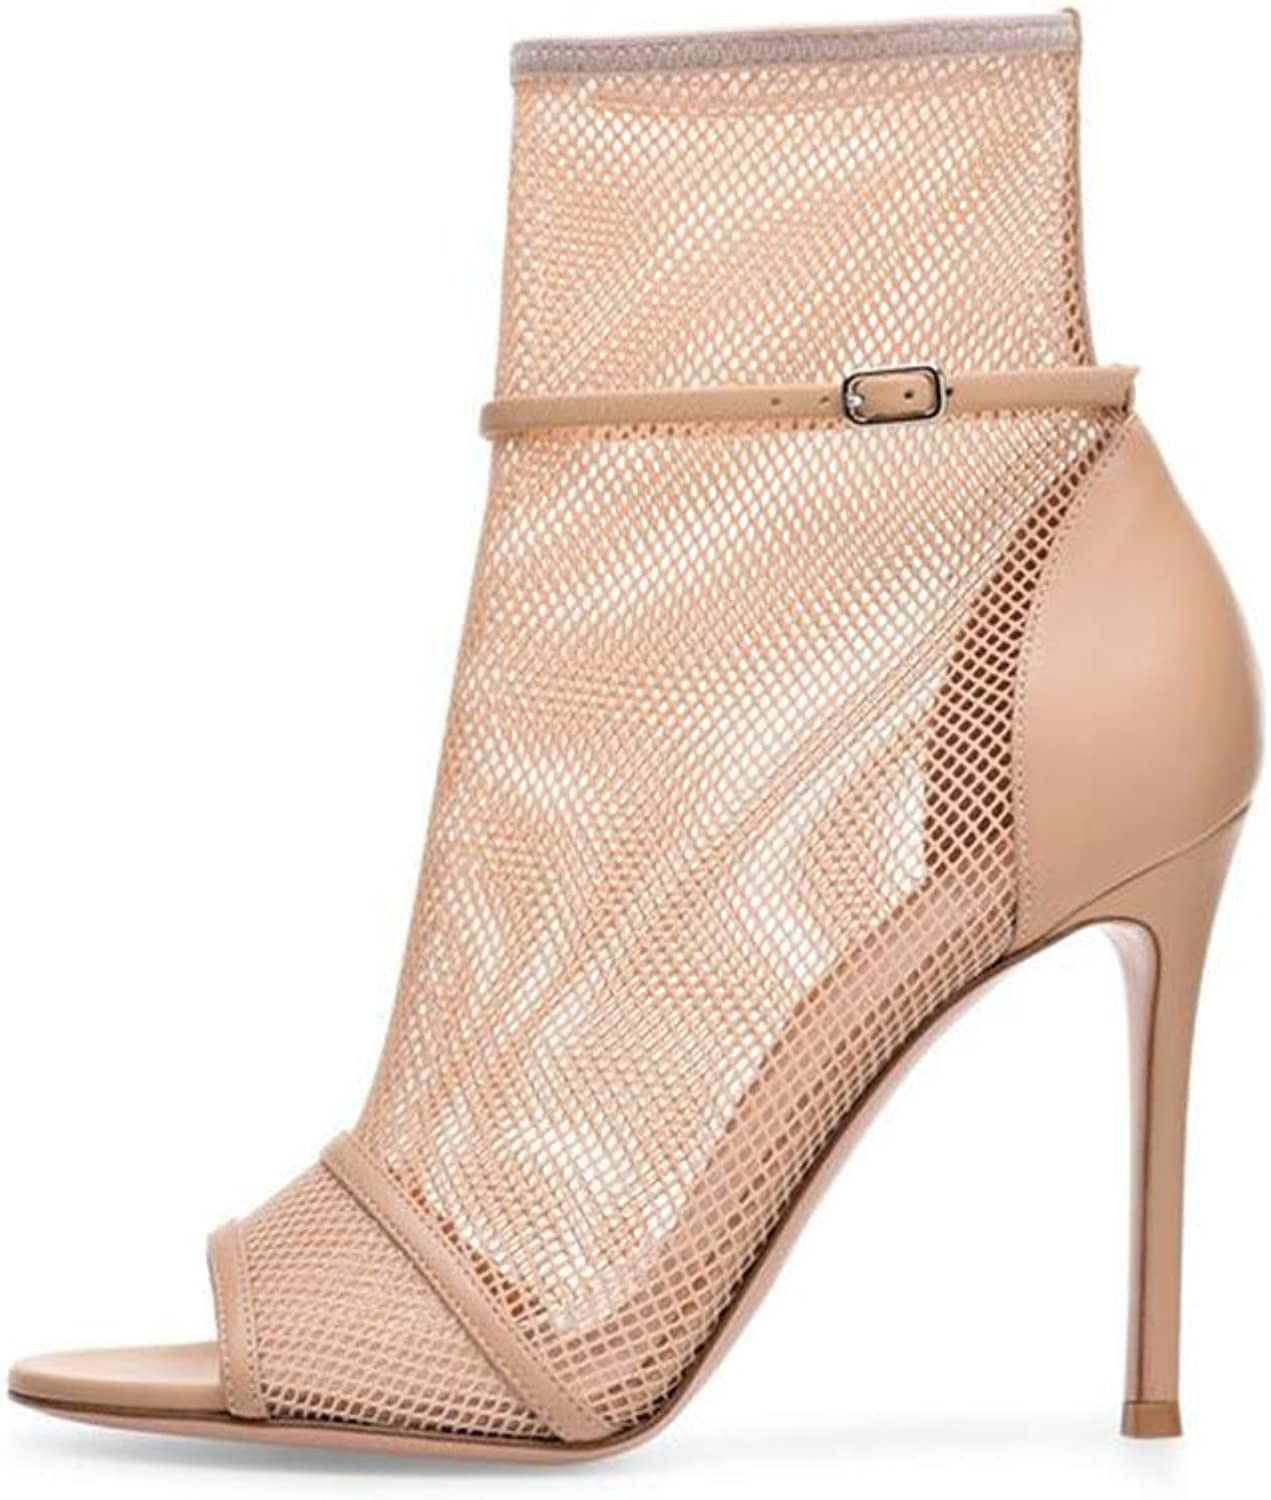 Exing Women's shoes Sexy Mesh Ankle Boots Fashion Boots Bootie Sandals Stiletto Heel Booties Ankle Boots